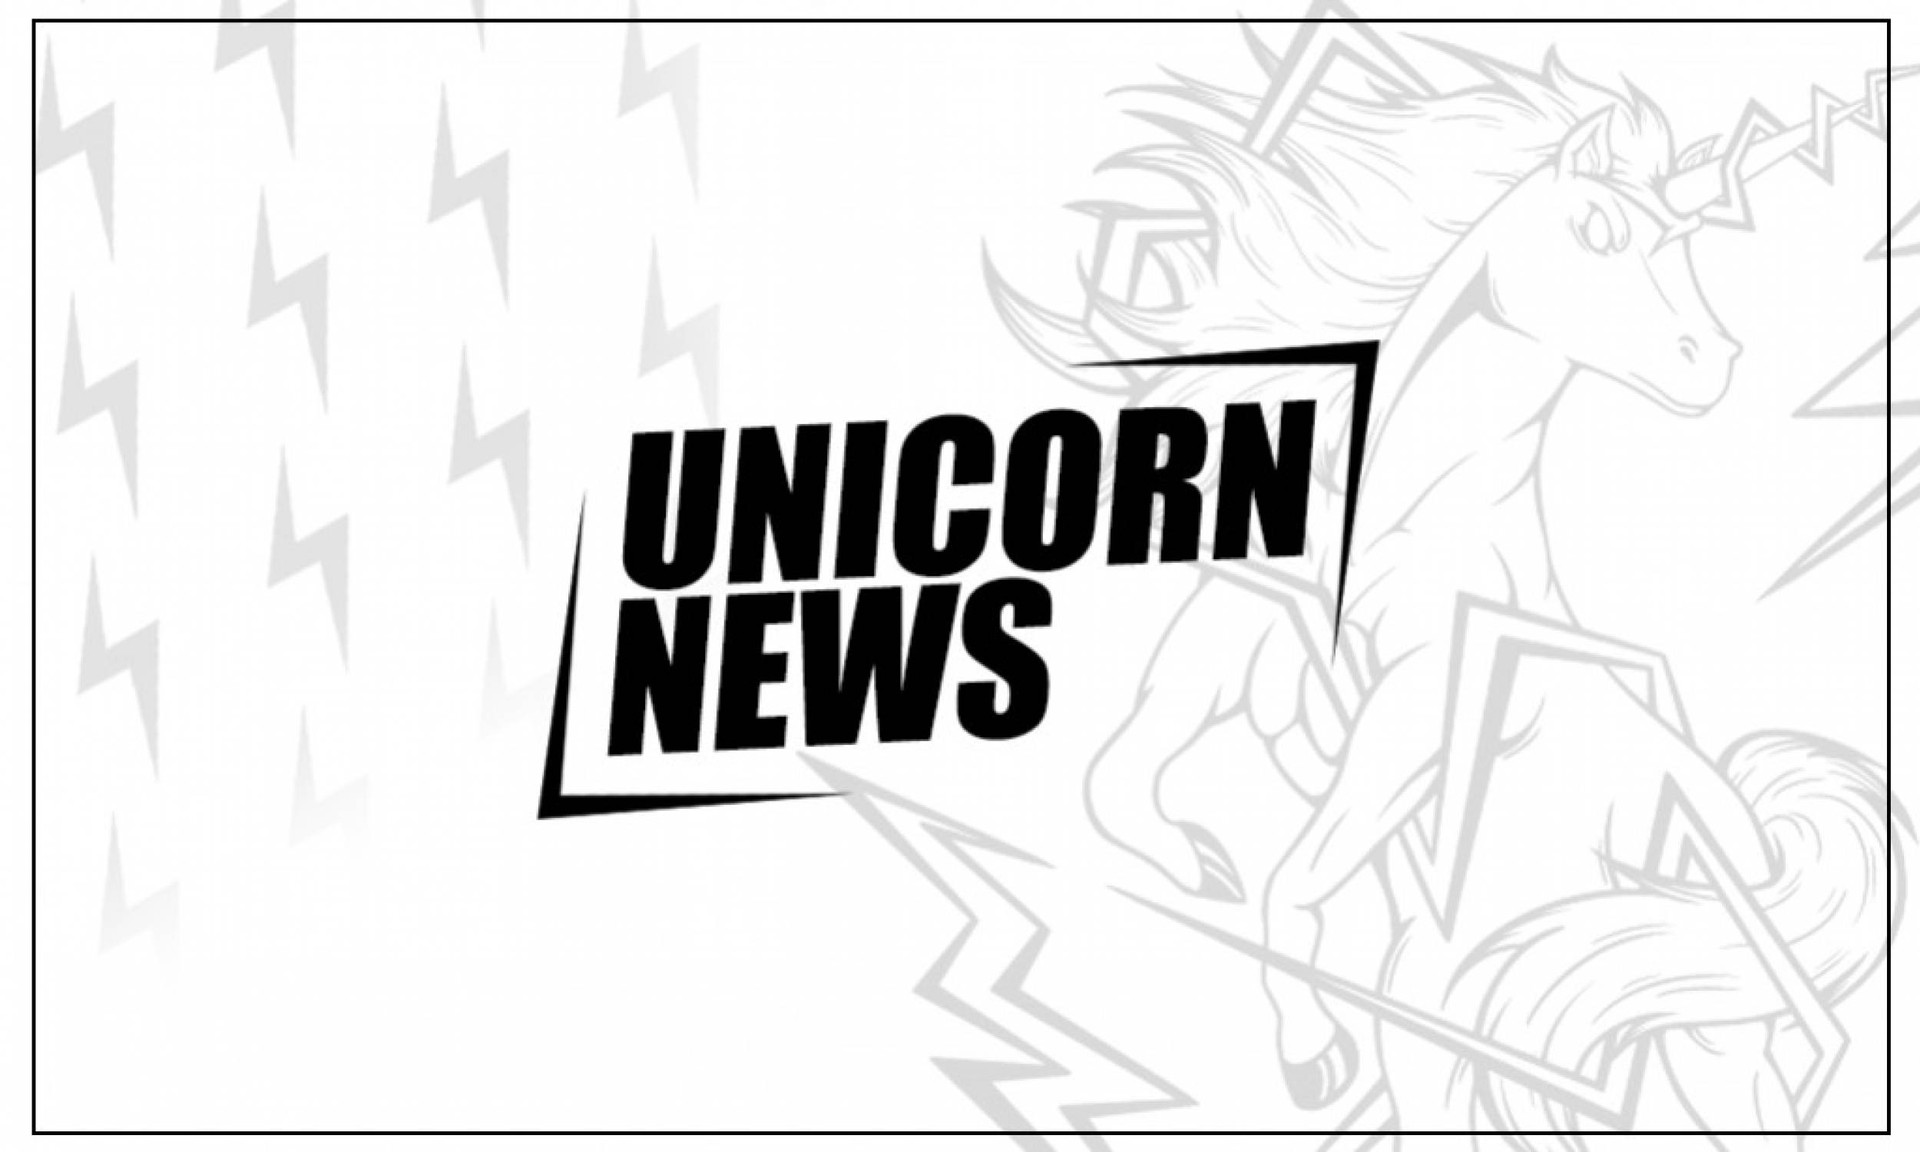 Launch of the new Unicorn website